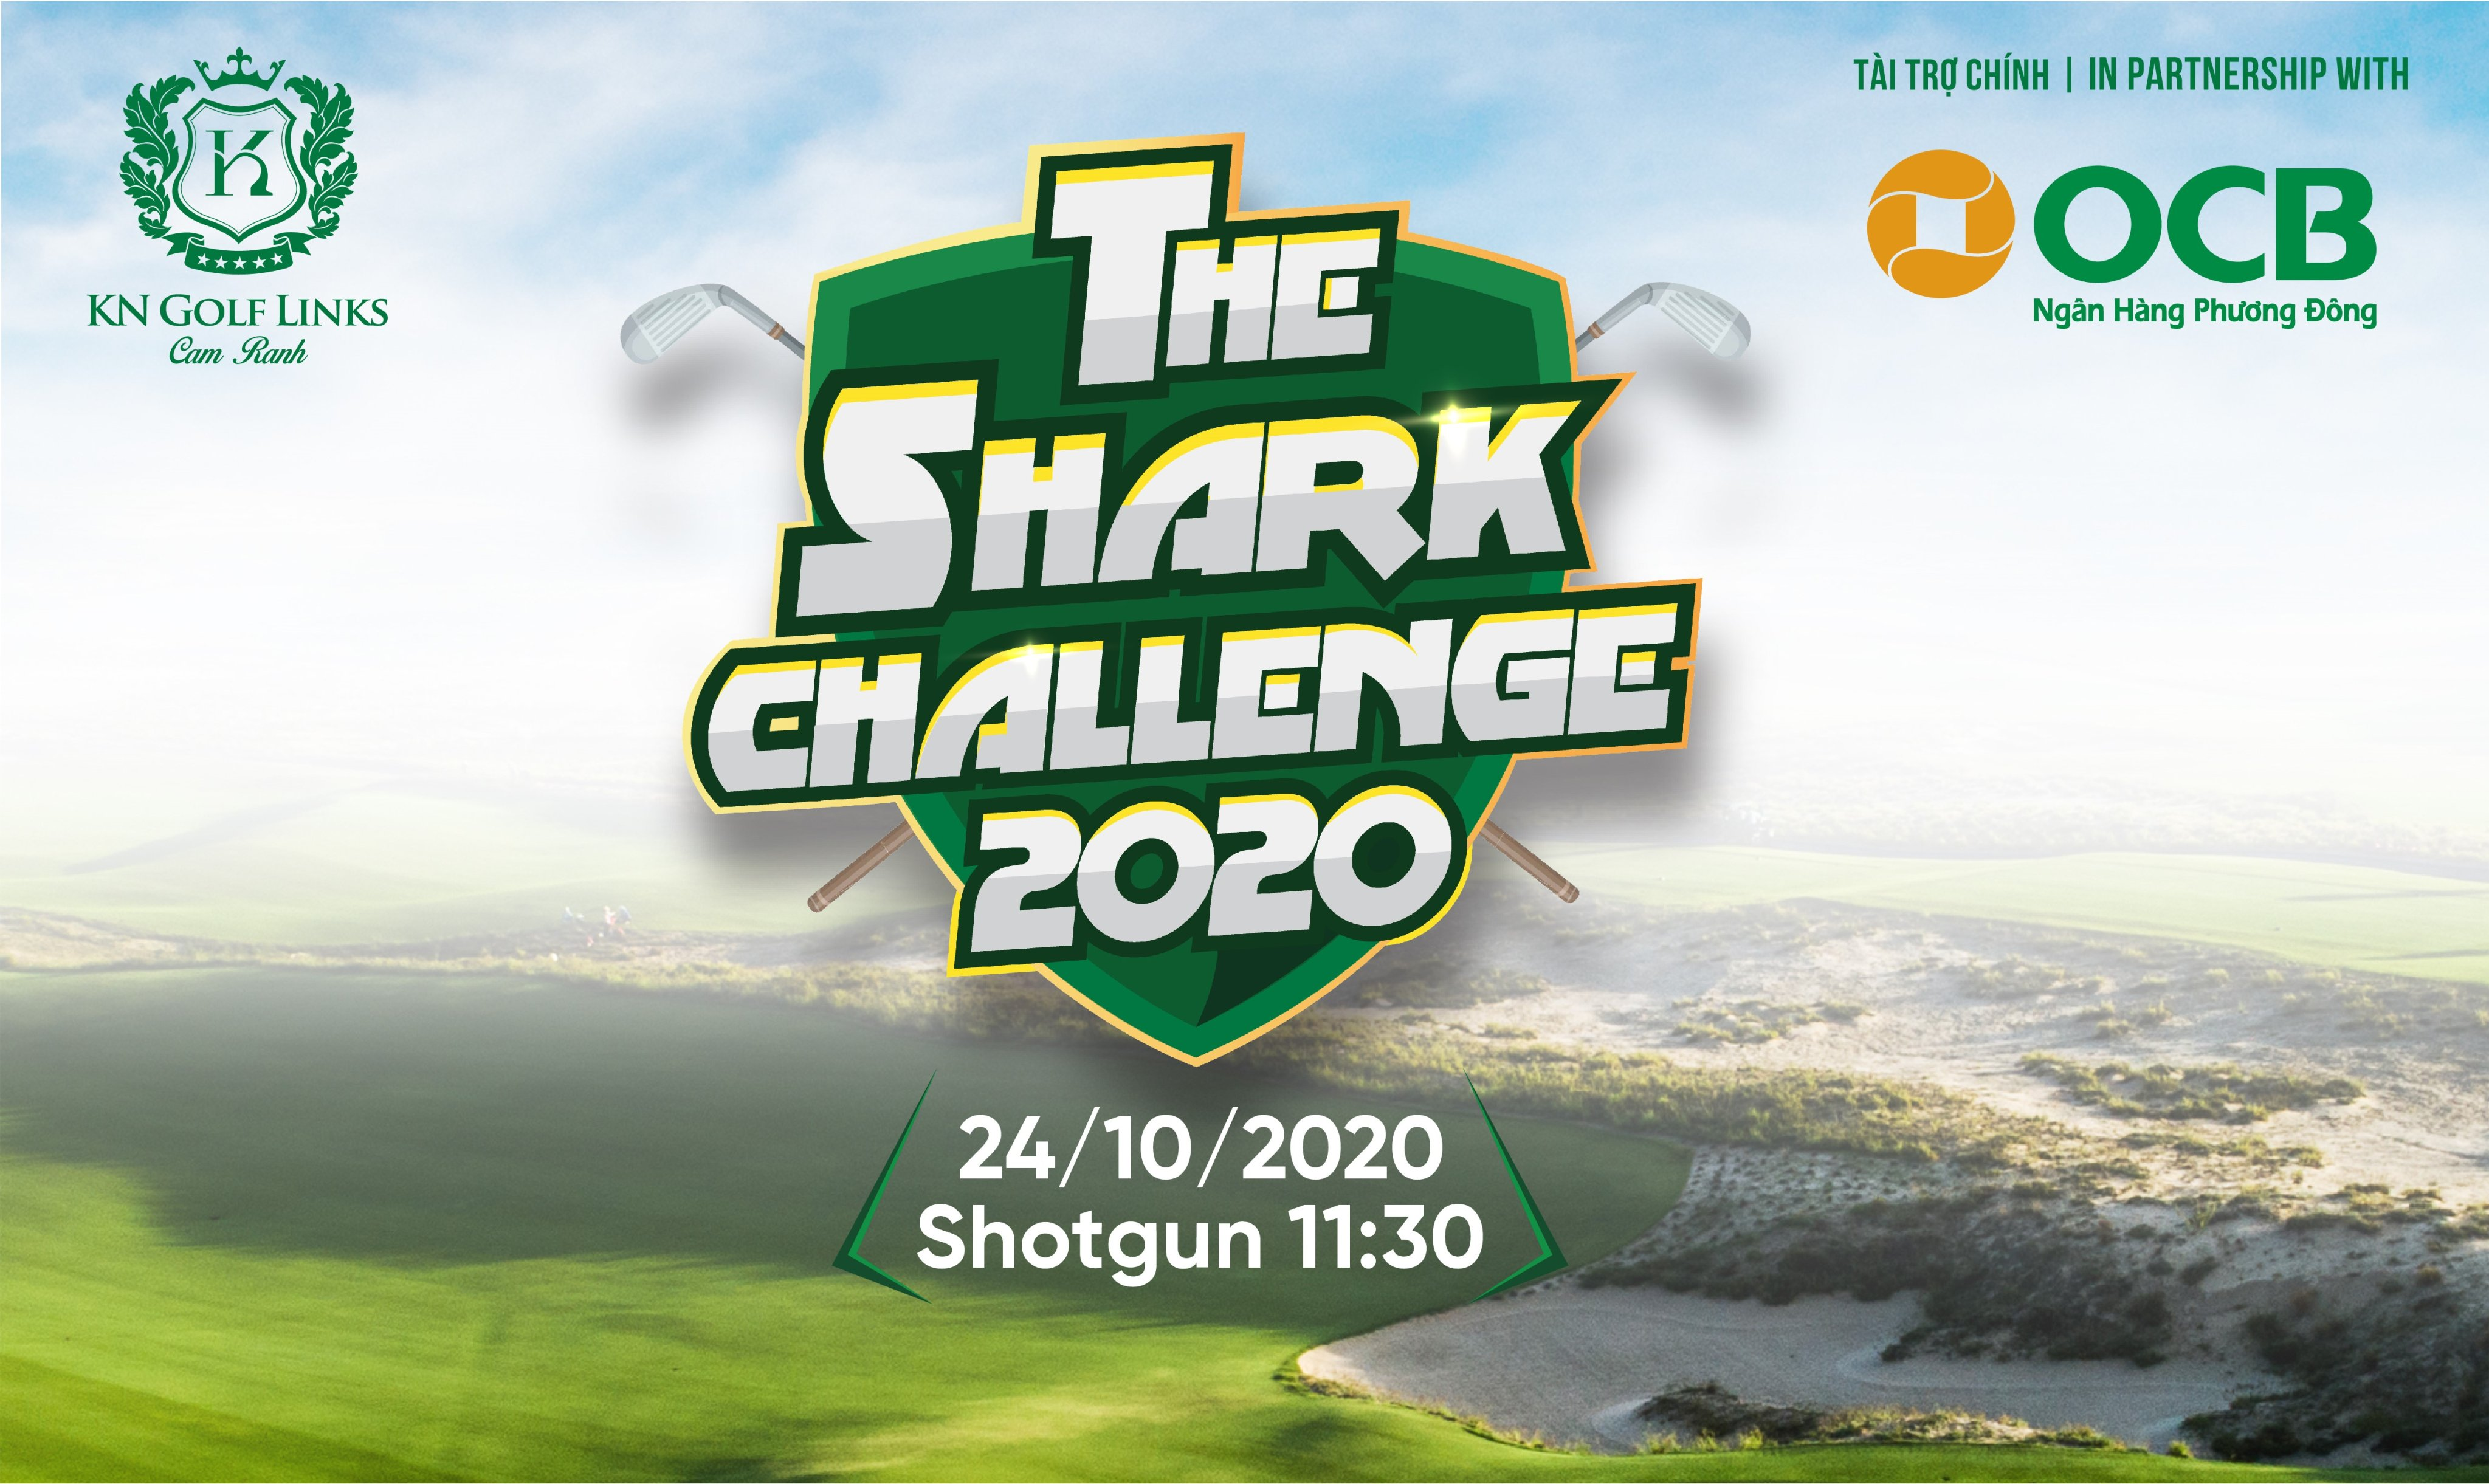 The Shark Challenge 2020 will be organized on 24/10/2020